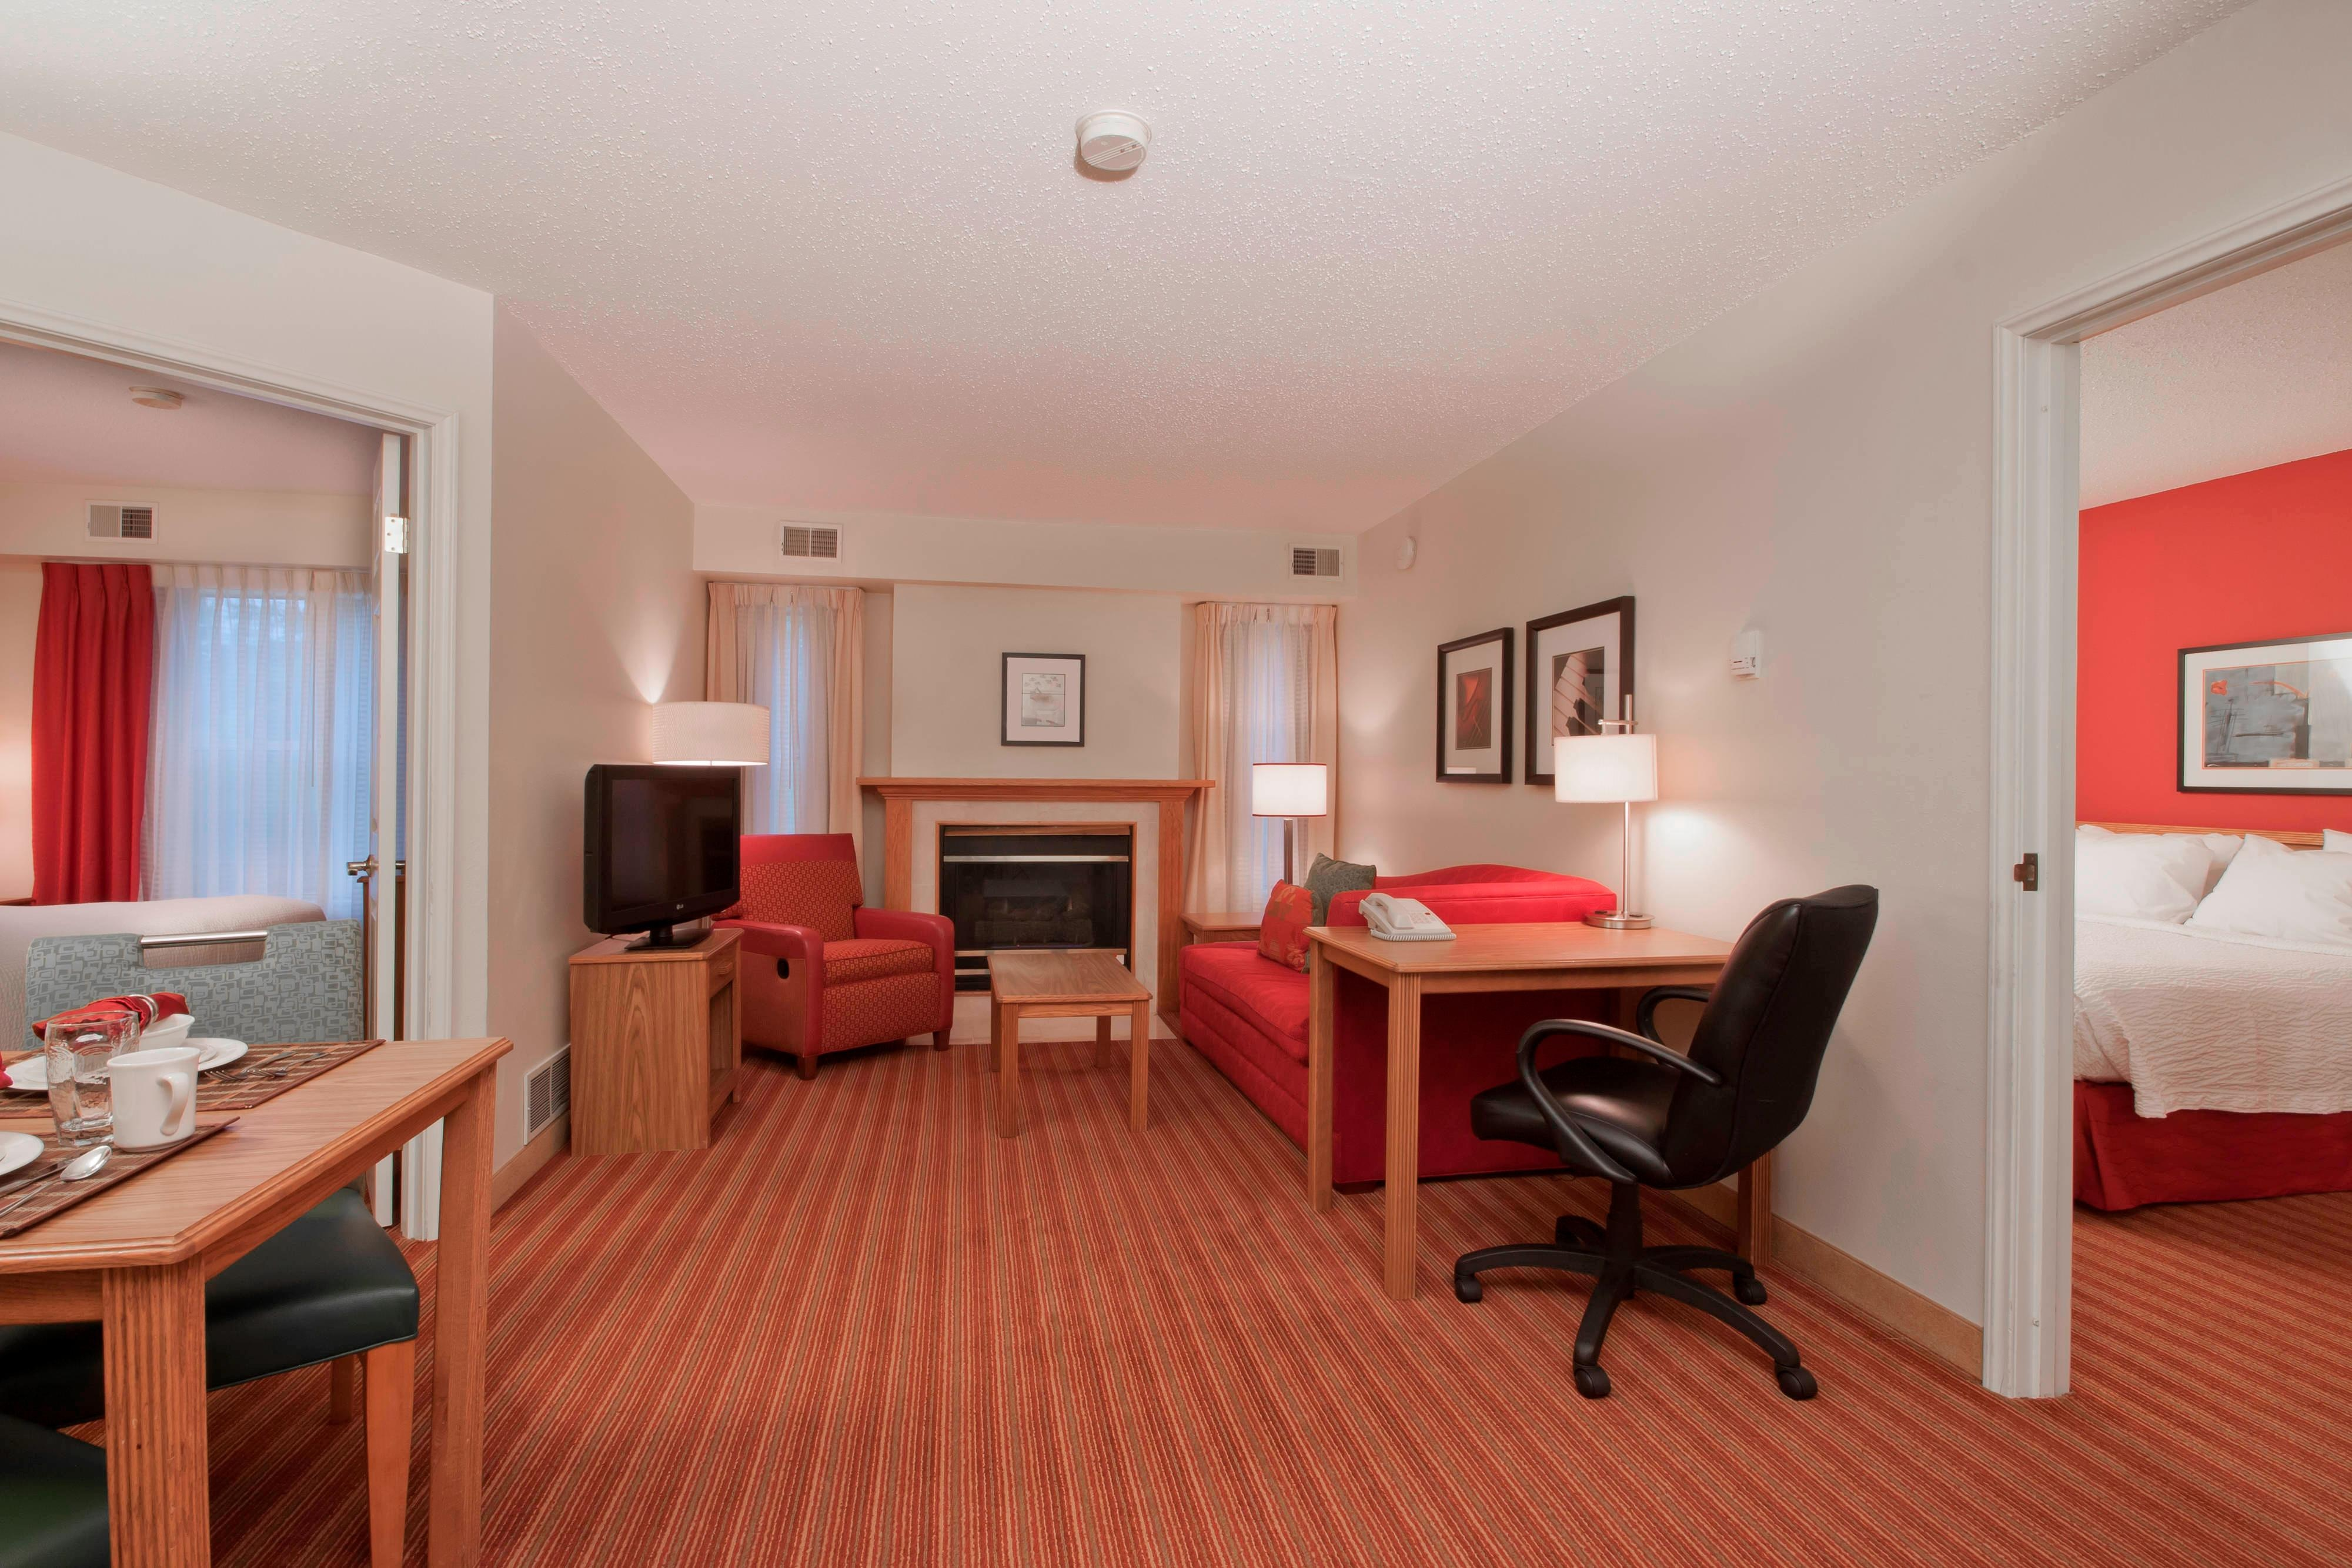 residence orleans new hotels ca hotel hor suites suite bedroom fresno clsc rooms inn in fatri